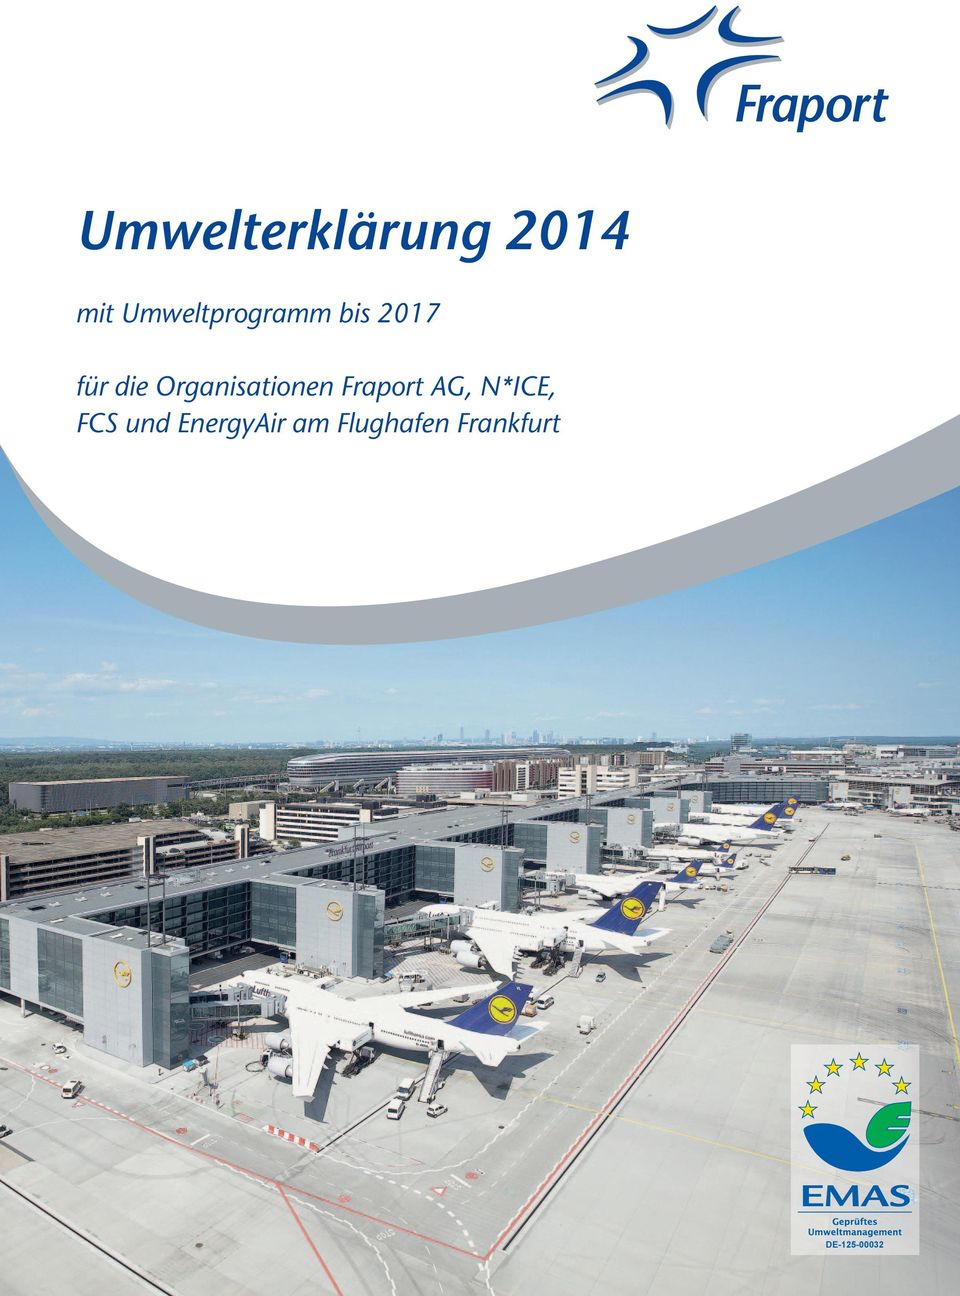 Organisationen Fraport AG, N*ICE,